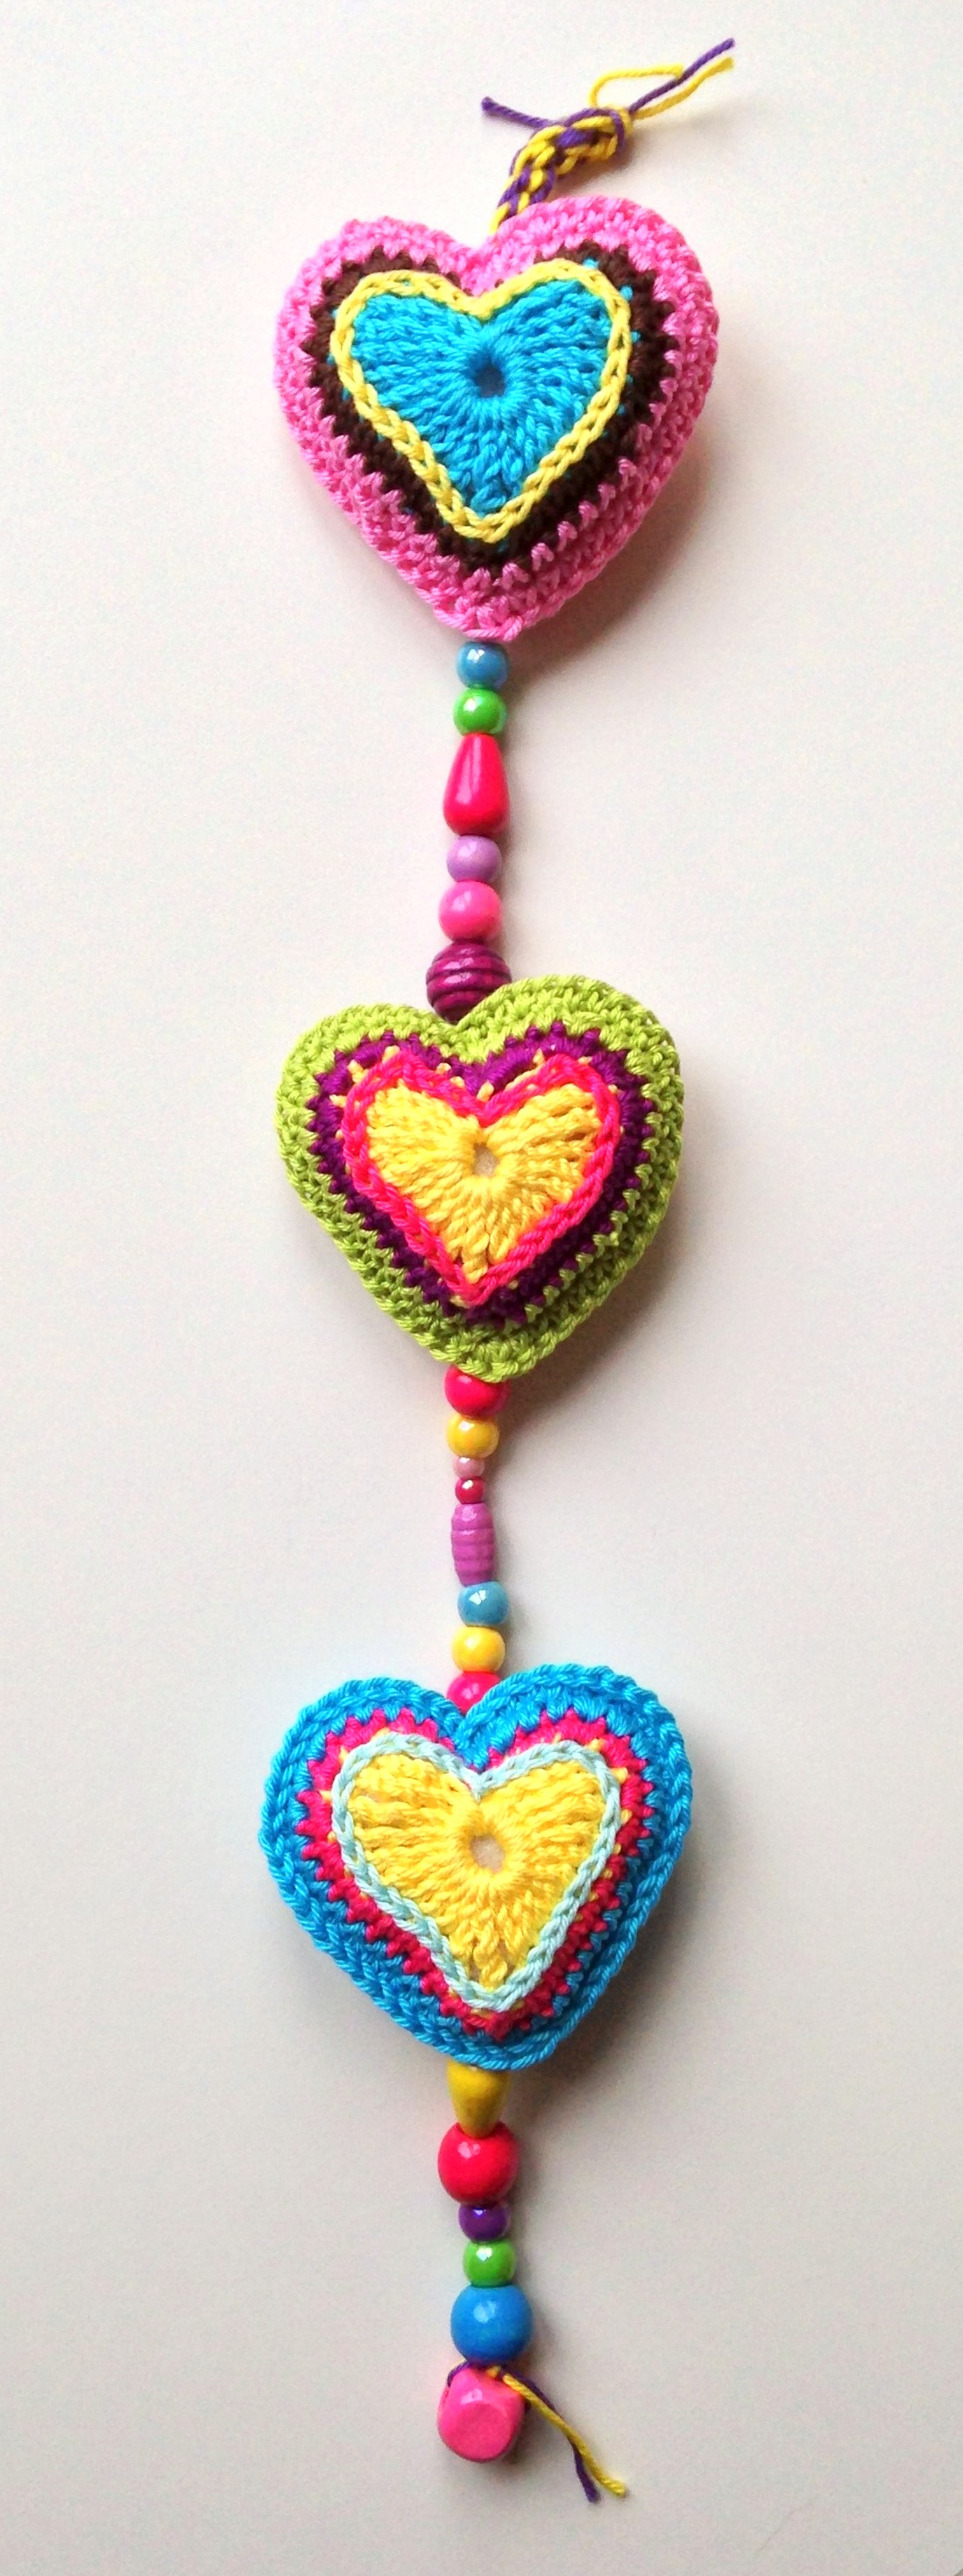 maRRose - CCC, 3 hearts wall hanger